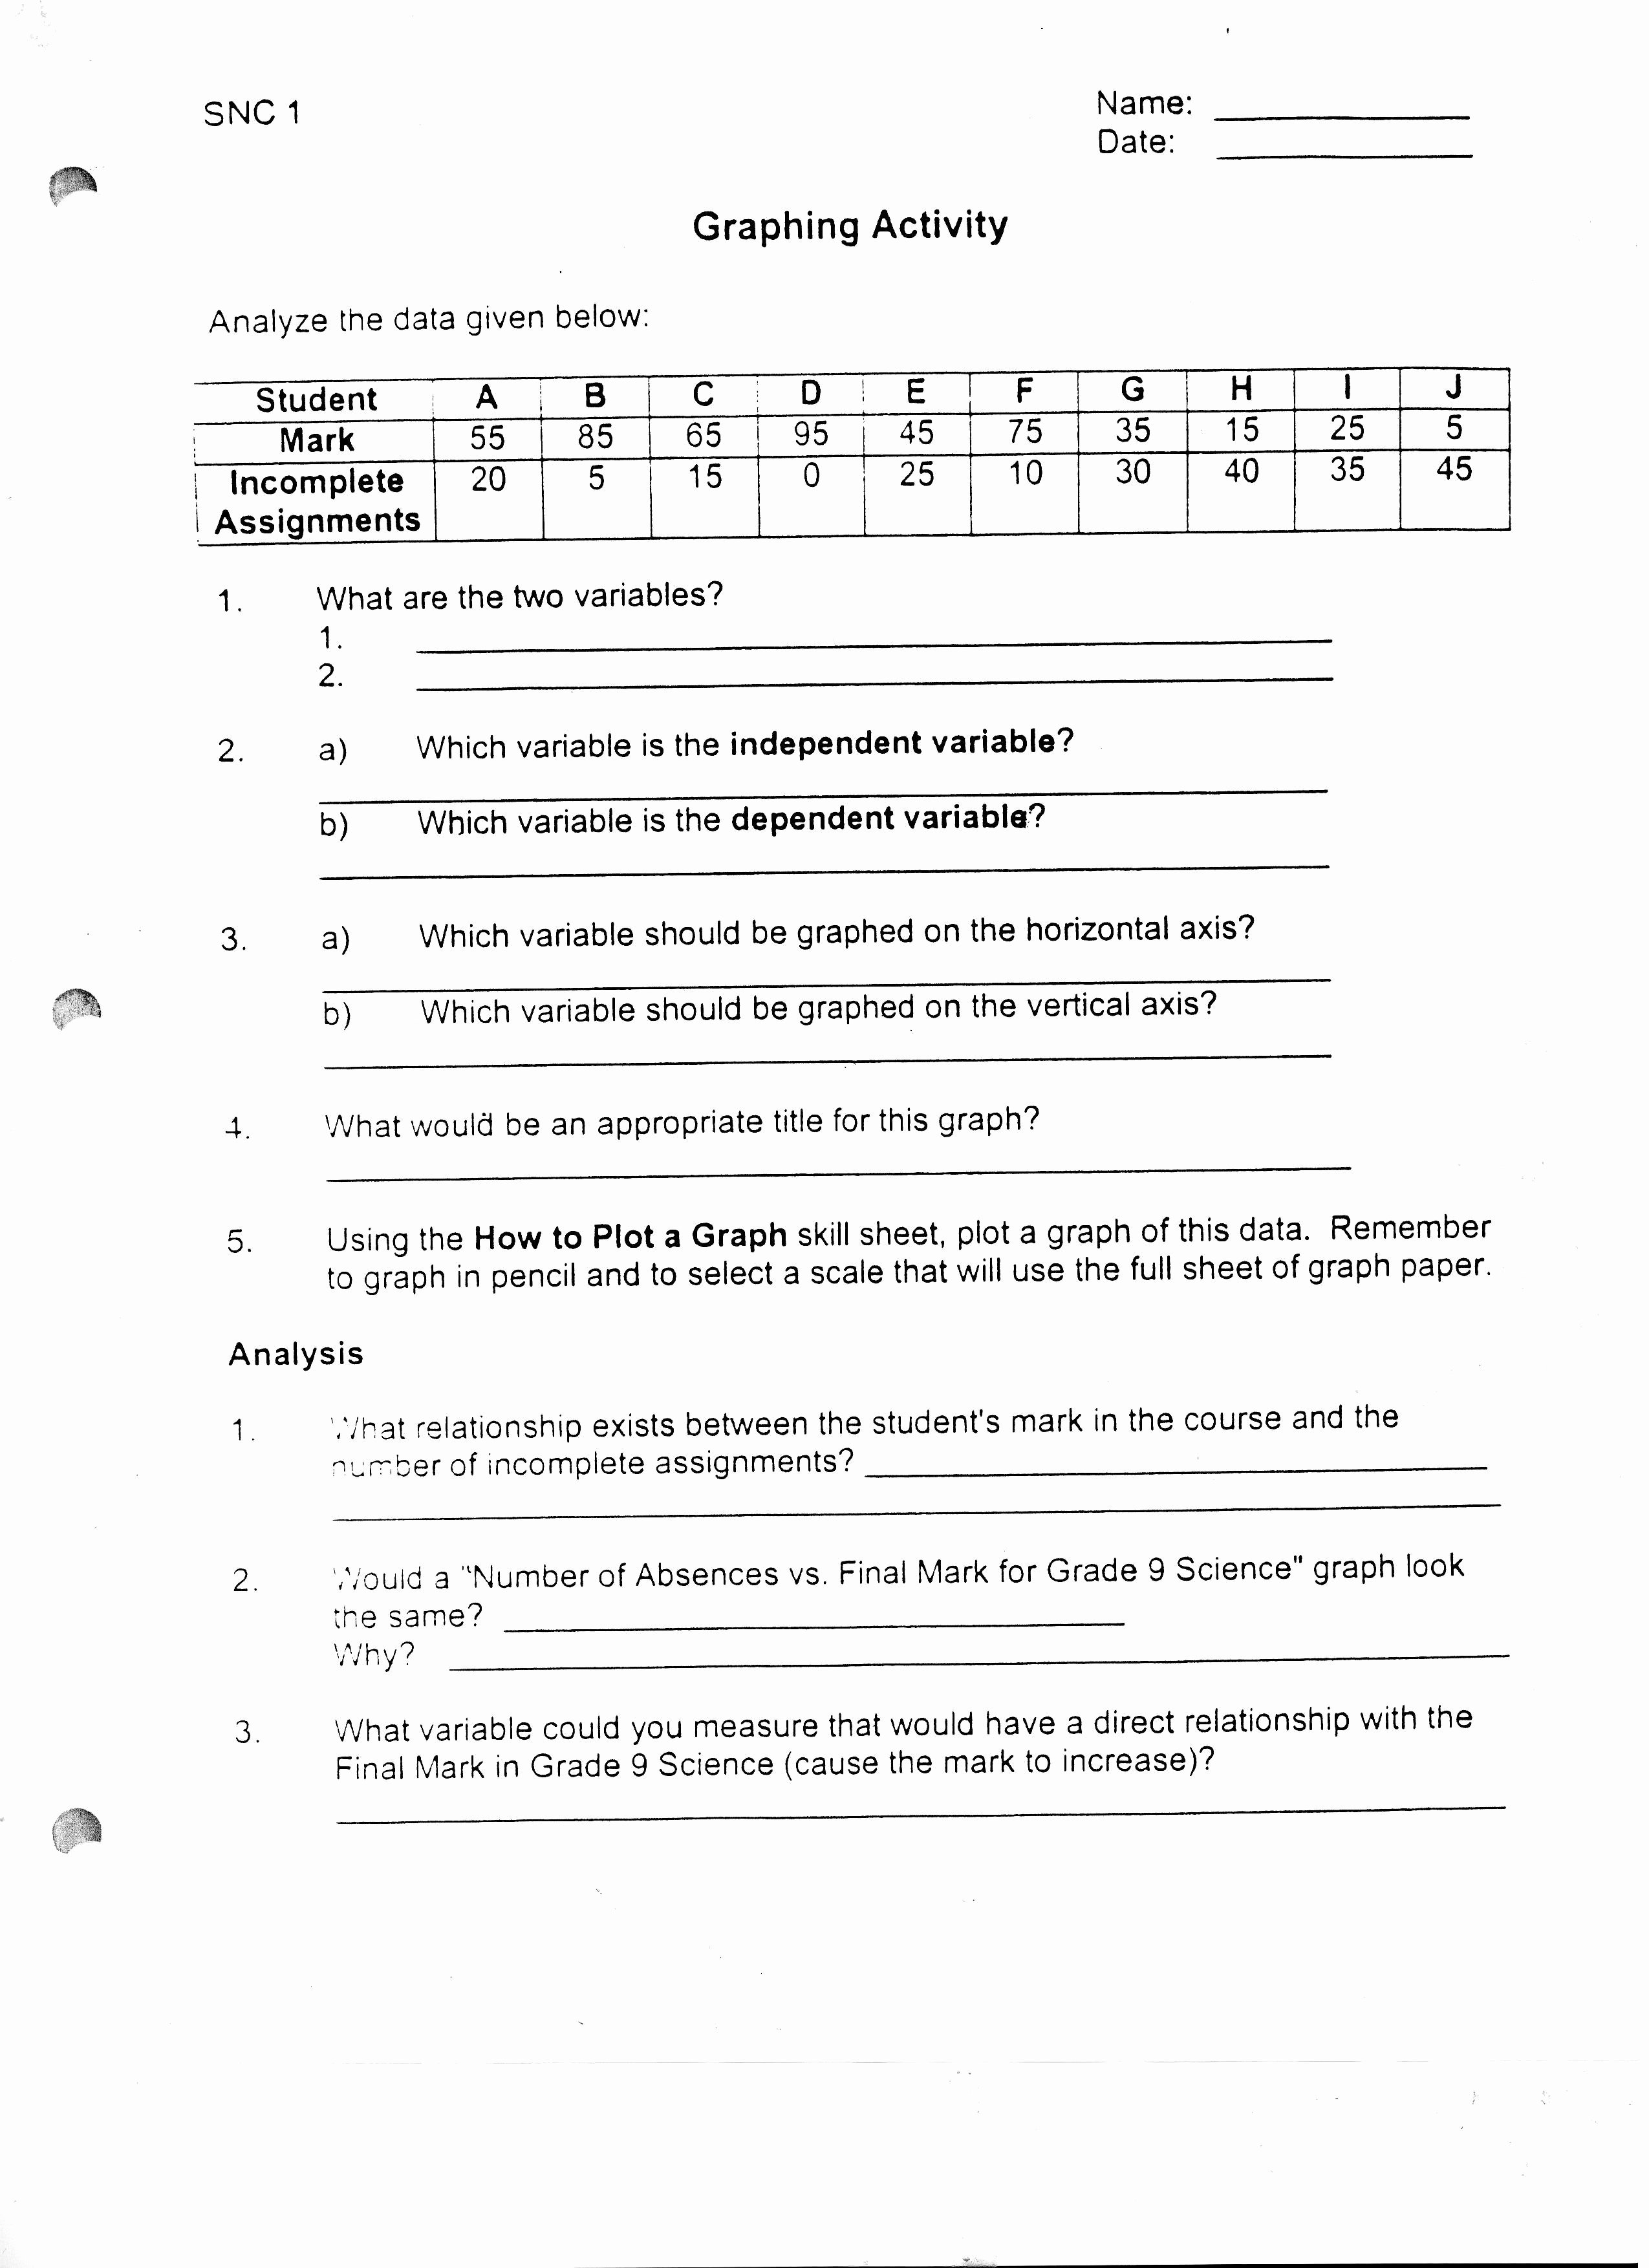 Identifying Variables Worksheet Answers Fresh Identifying Variables Worksheet